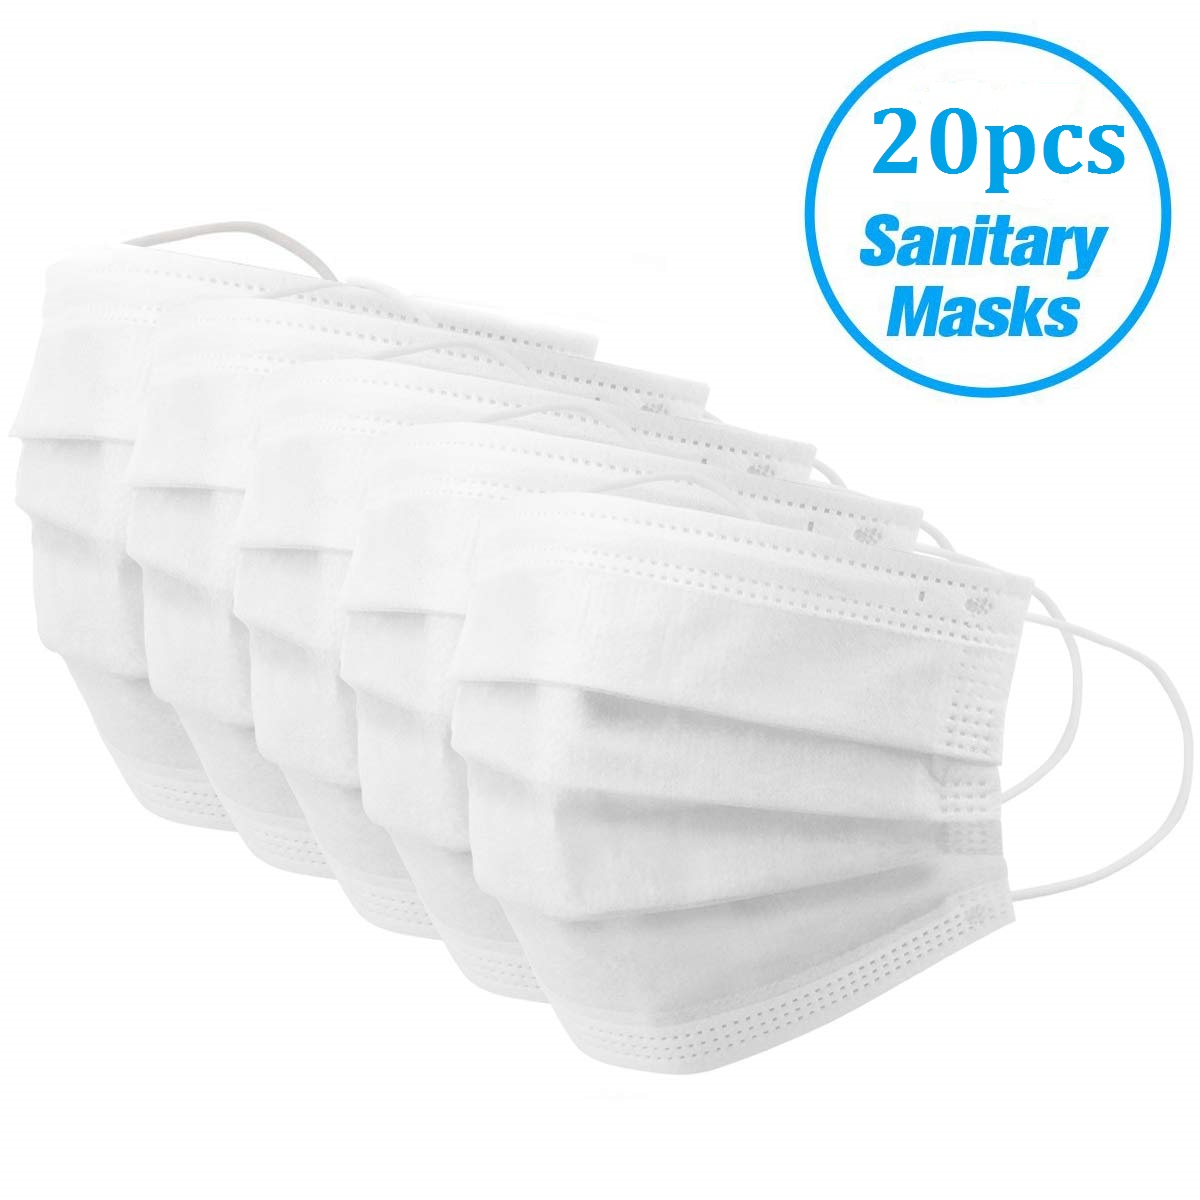 Disposable 3-Ply Face Mask Antiviral Medical Surgical Mask with Earloop Polypropylene Masks for Personal Health - 20 Pieces (White)